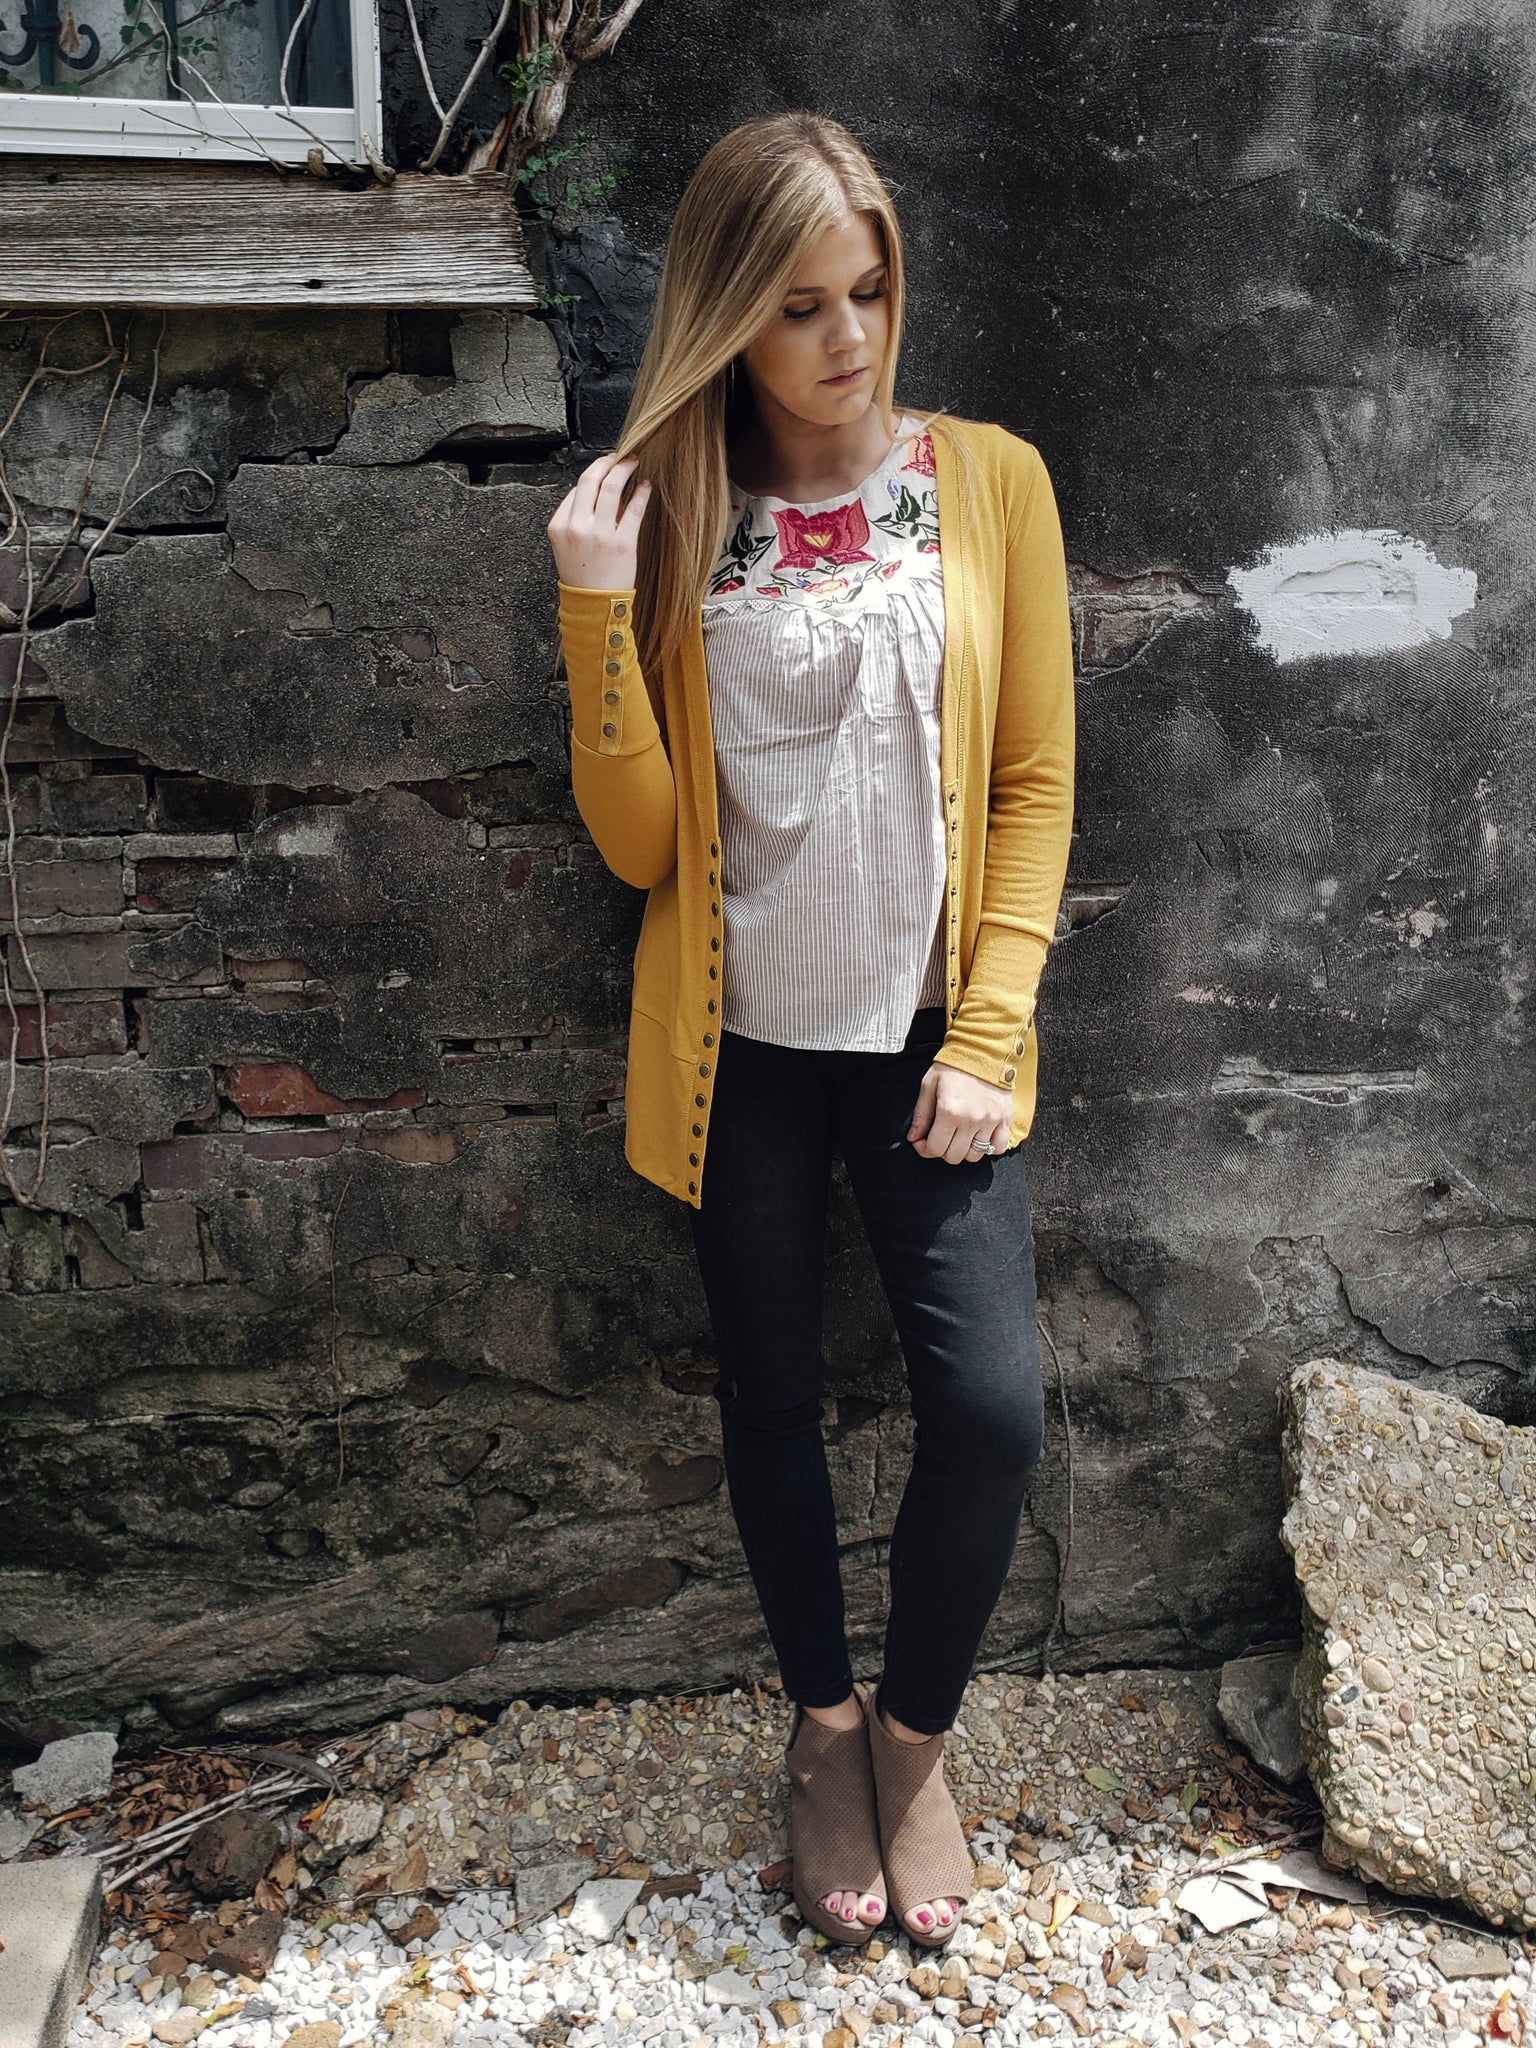 Queen of Jewel Tones Cardi in Mustard - Enclothe Boutique